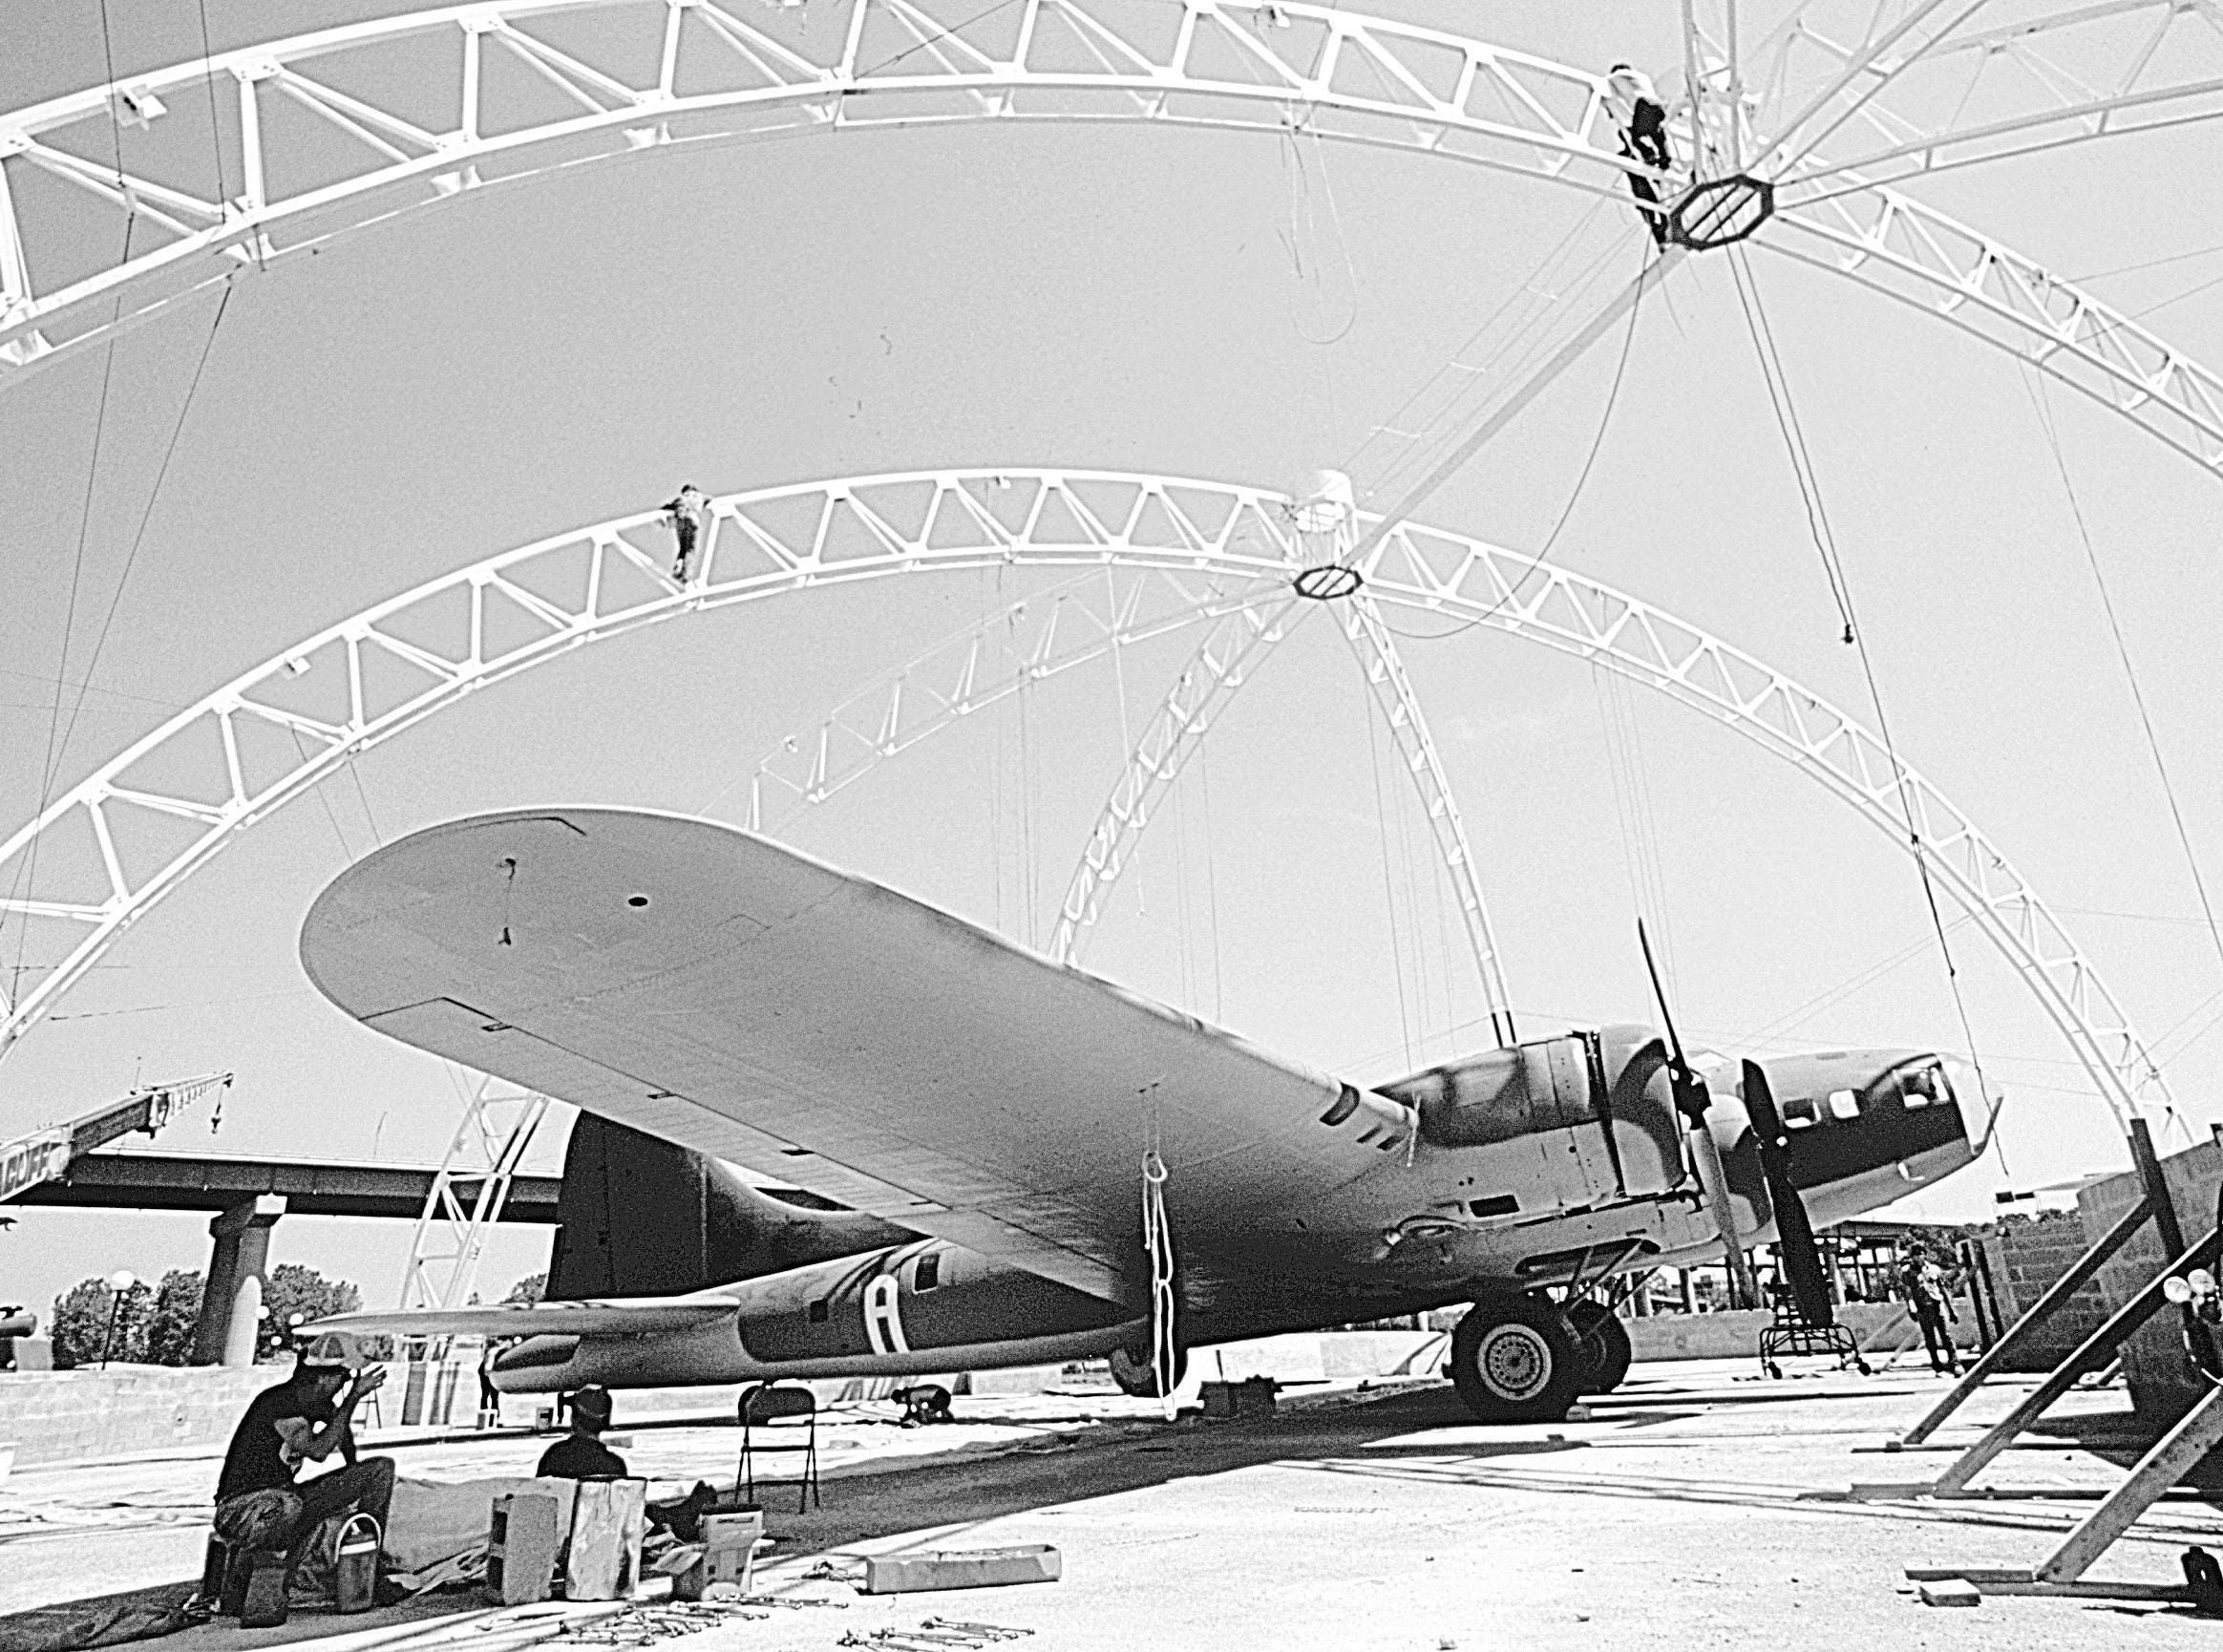 Workmen eat lunch in the shade of the Memphis Belle's wing on 21 Apr 1987 while others erect the dome frame of the new hangar housing the World War II B17 bomber at Mud Island. The fabric covering for the dome is scheduled for installation later in the day. The dome, located at the north end of Mud Island river park, was built after a fund-raising campaign last year saved the plane from being reclaimed by the Air Force. Dedication of the building is scheduled for May 17.